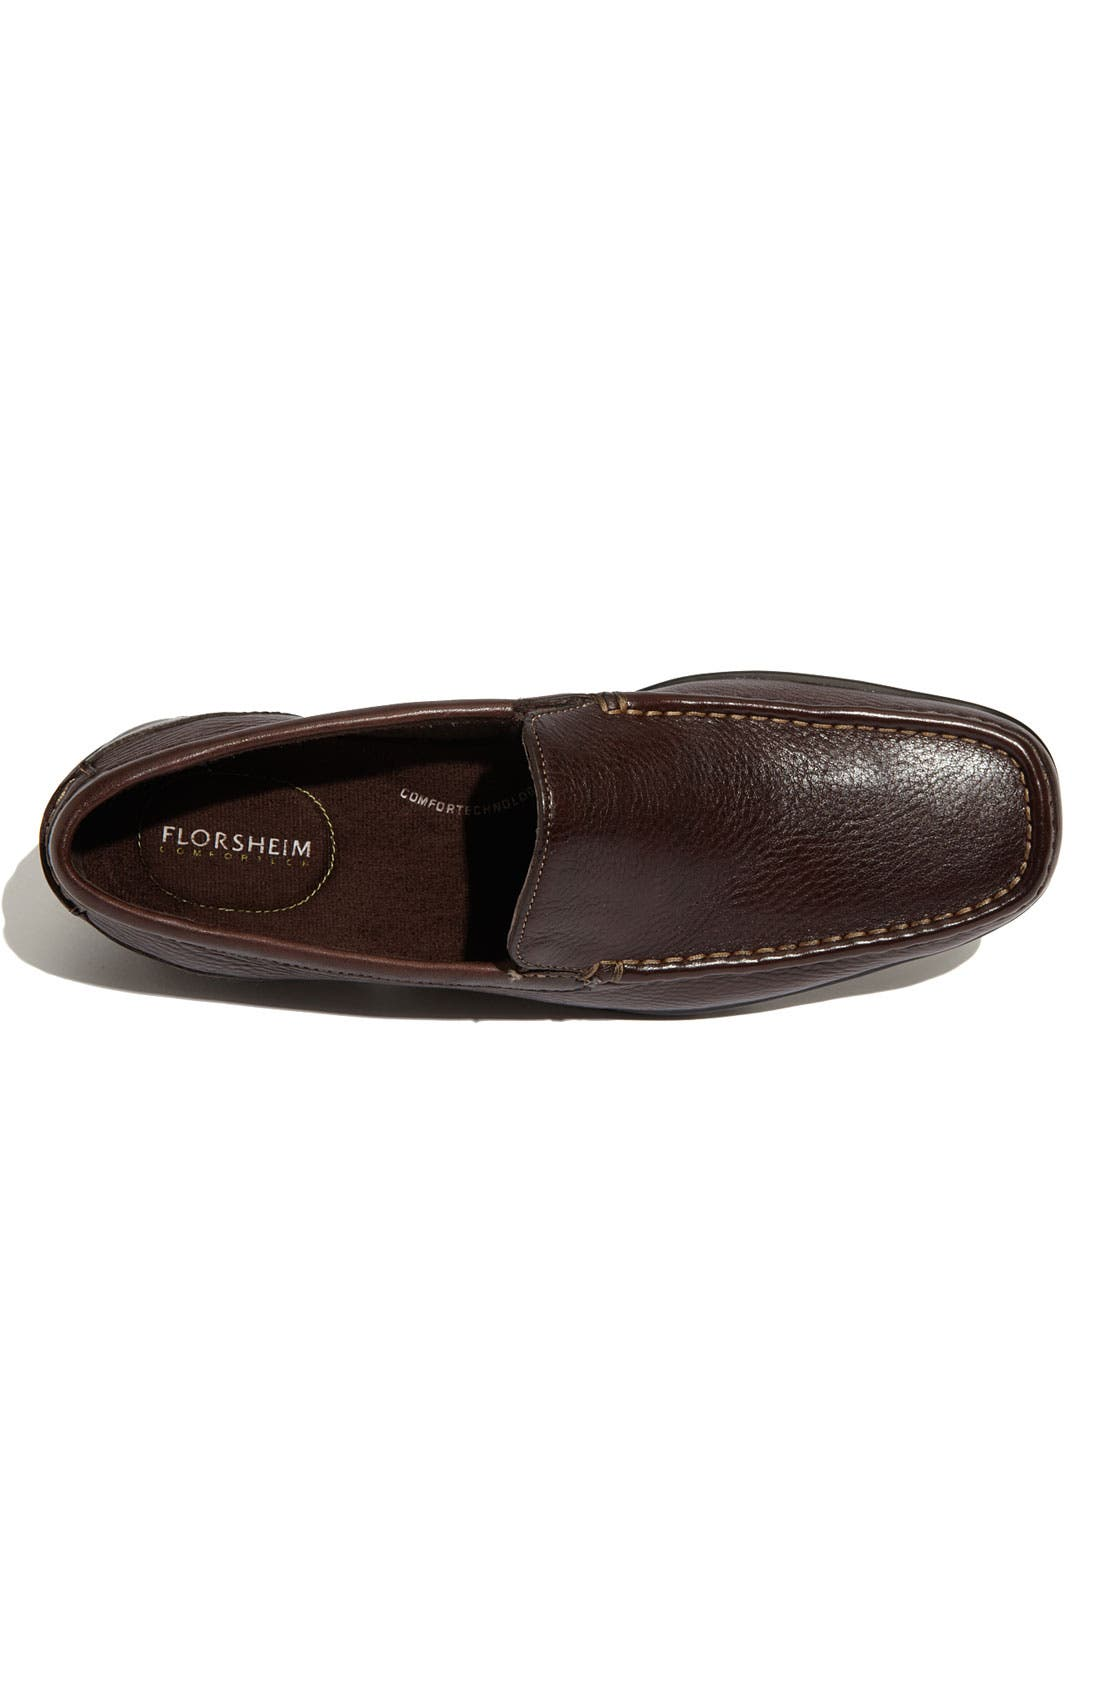 Alternate Image 2  - Florsheim 'Nowles' Slip-On